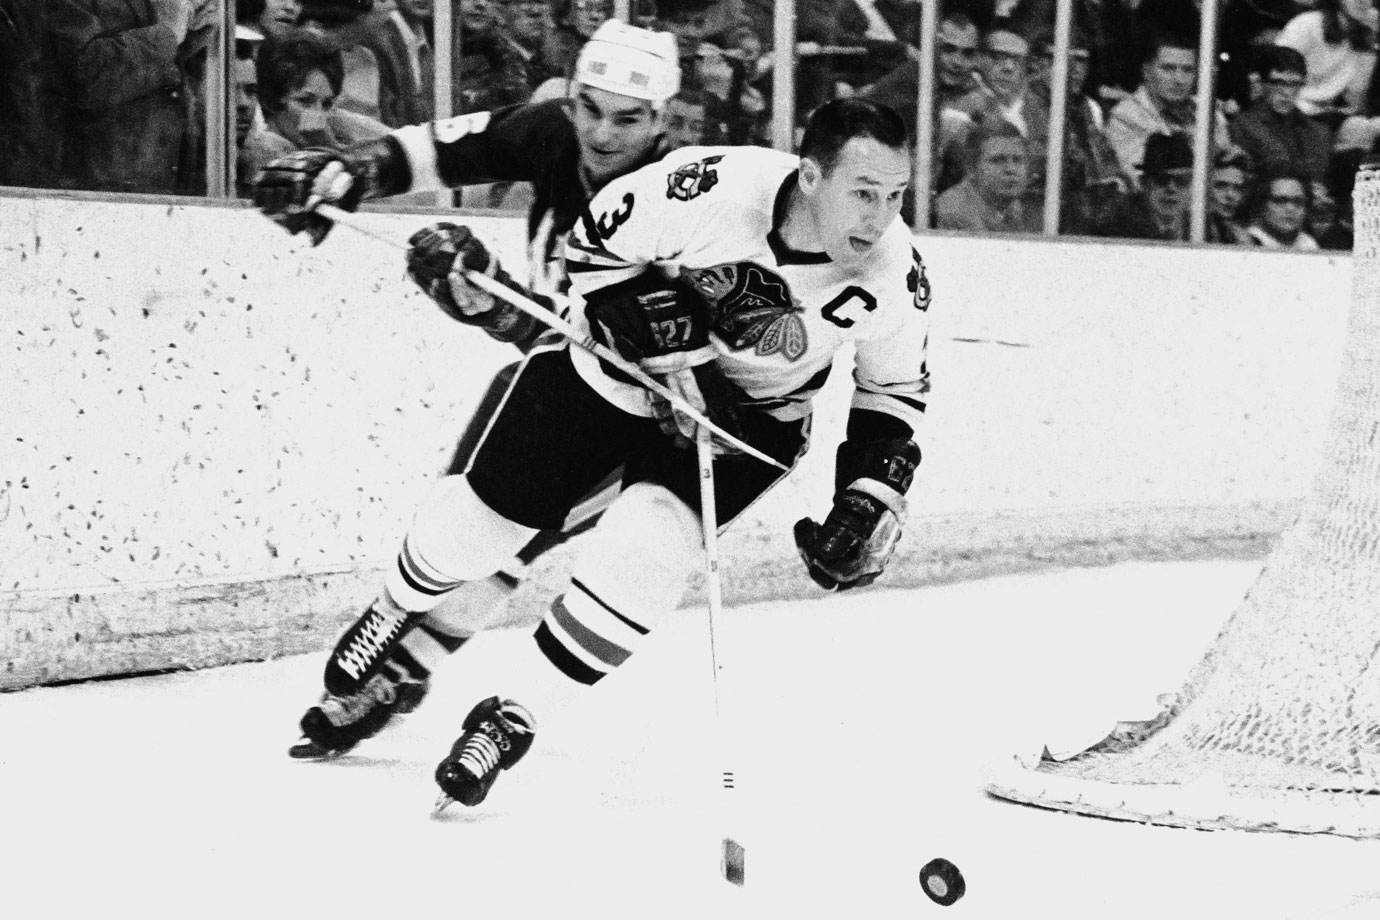 "Although he began playing hockey rather late — at age 17 — the Quebec native quickly left his mark in the Blackhawks organization. A true tough guy on the backline, Pilote sacrificed his body to block shots and deliver bone-jarring checks. He once knocked out both Henri and Maurice Richard of the Canadiens during the same play. Paired with Elmer ""Moose"" Vasko, the two were pillars of Chicago's 1961 Stanley Cup championship team, which Pilote captained. He was awarded the Norris Trophy three years in a row (1963-65) and was inducted into the Hockey Hall of Fame in 1975."